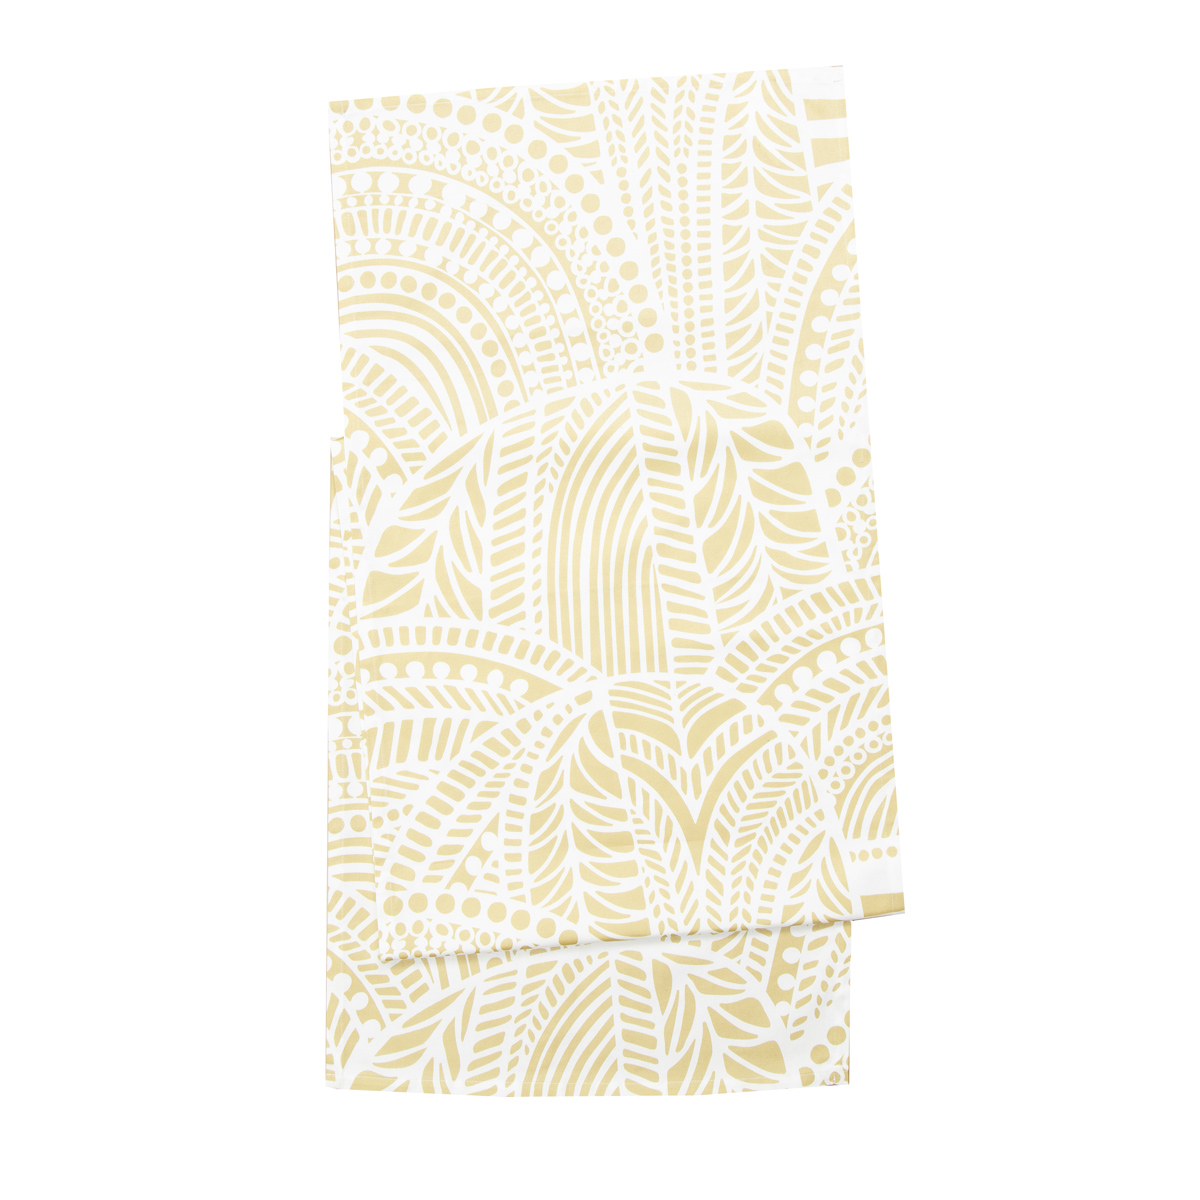 Marimekko Vuorilaakso White Gold Table Runner Table Runners